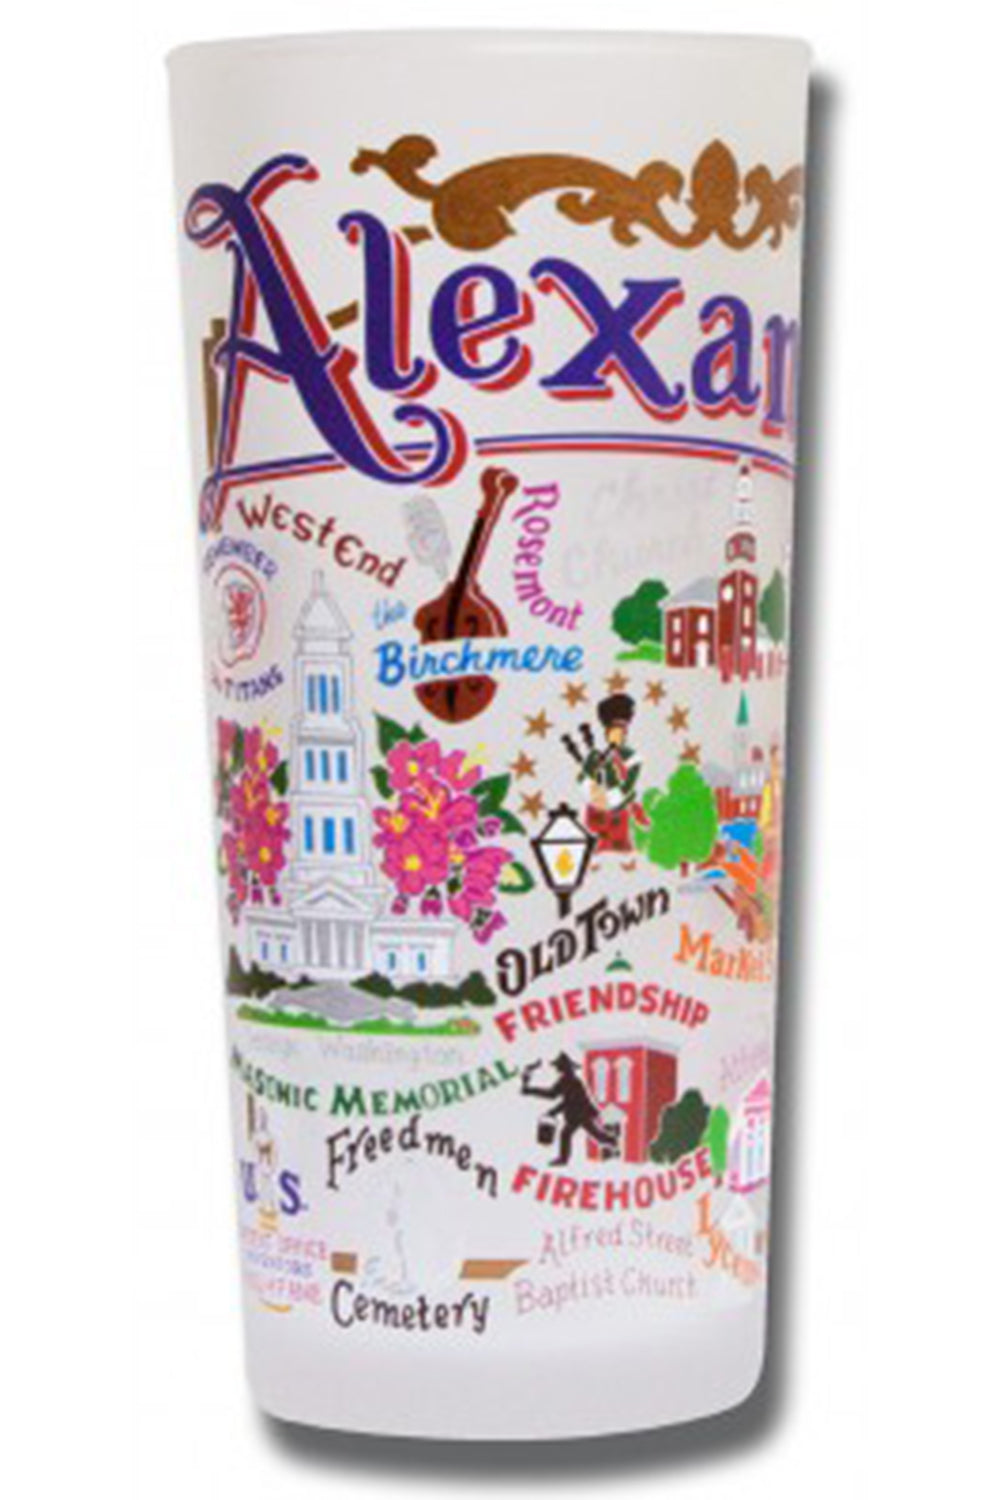 CS Frosted Glass Tumbler Cup - Alexandria